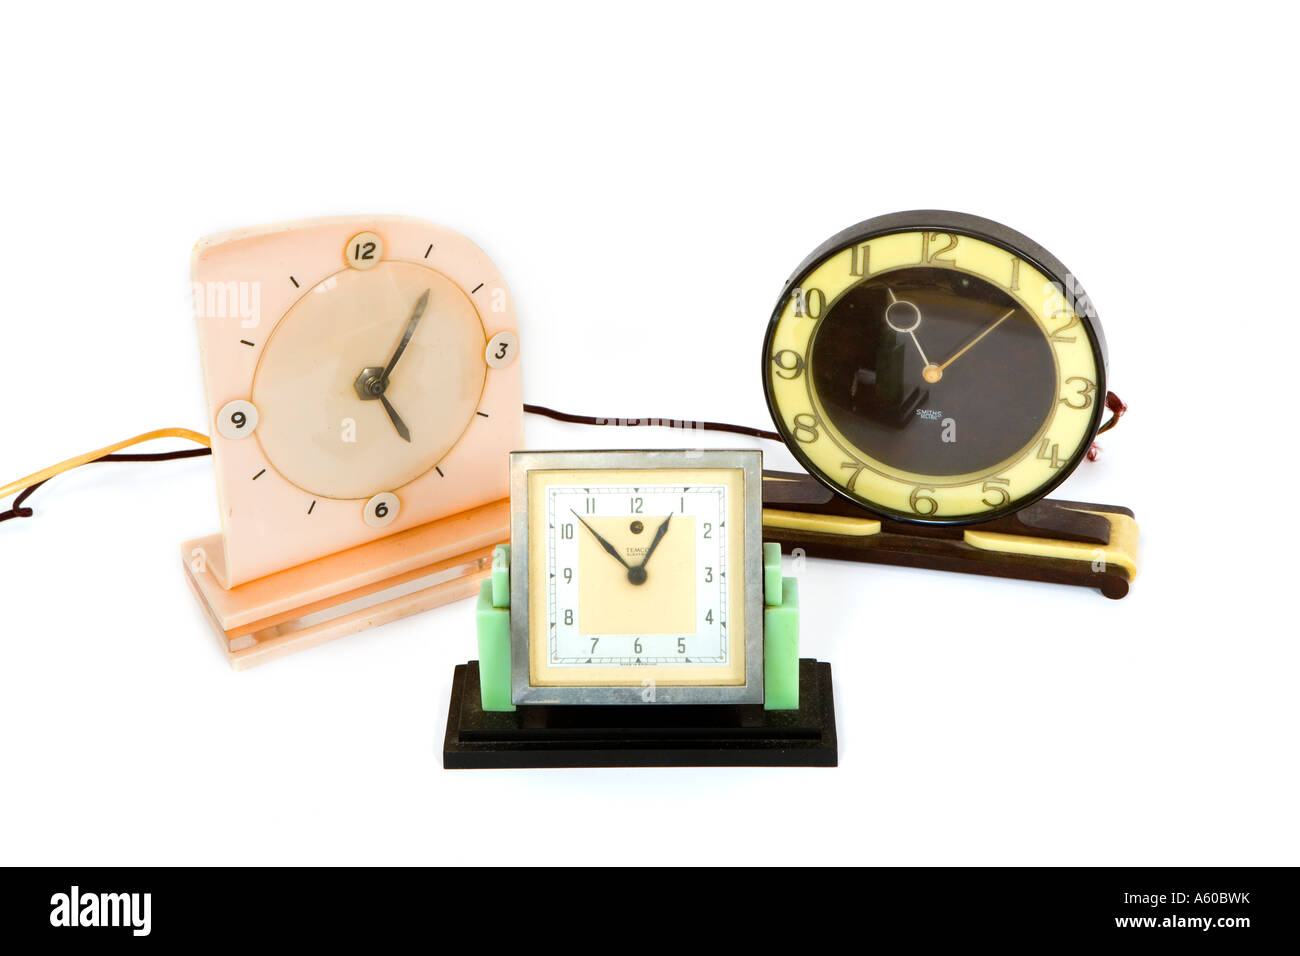 art deco style electric plastic bakelite clocks - Stock Image